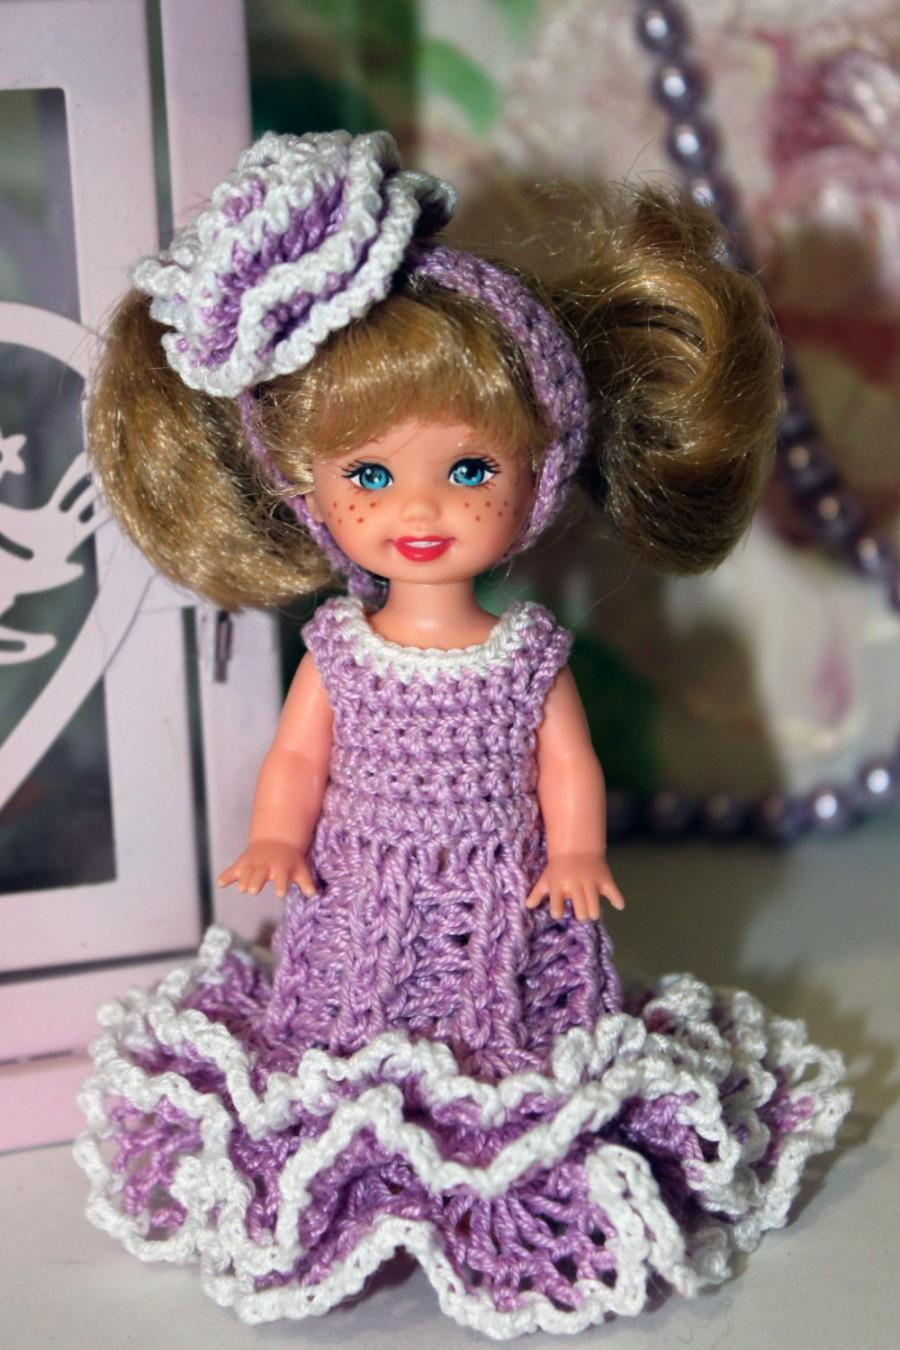 Clothes Crochet Dress For Kelly 45 Inches Doll Handmade Miniature